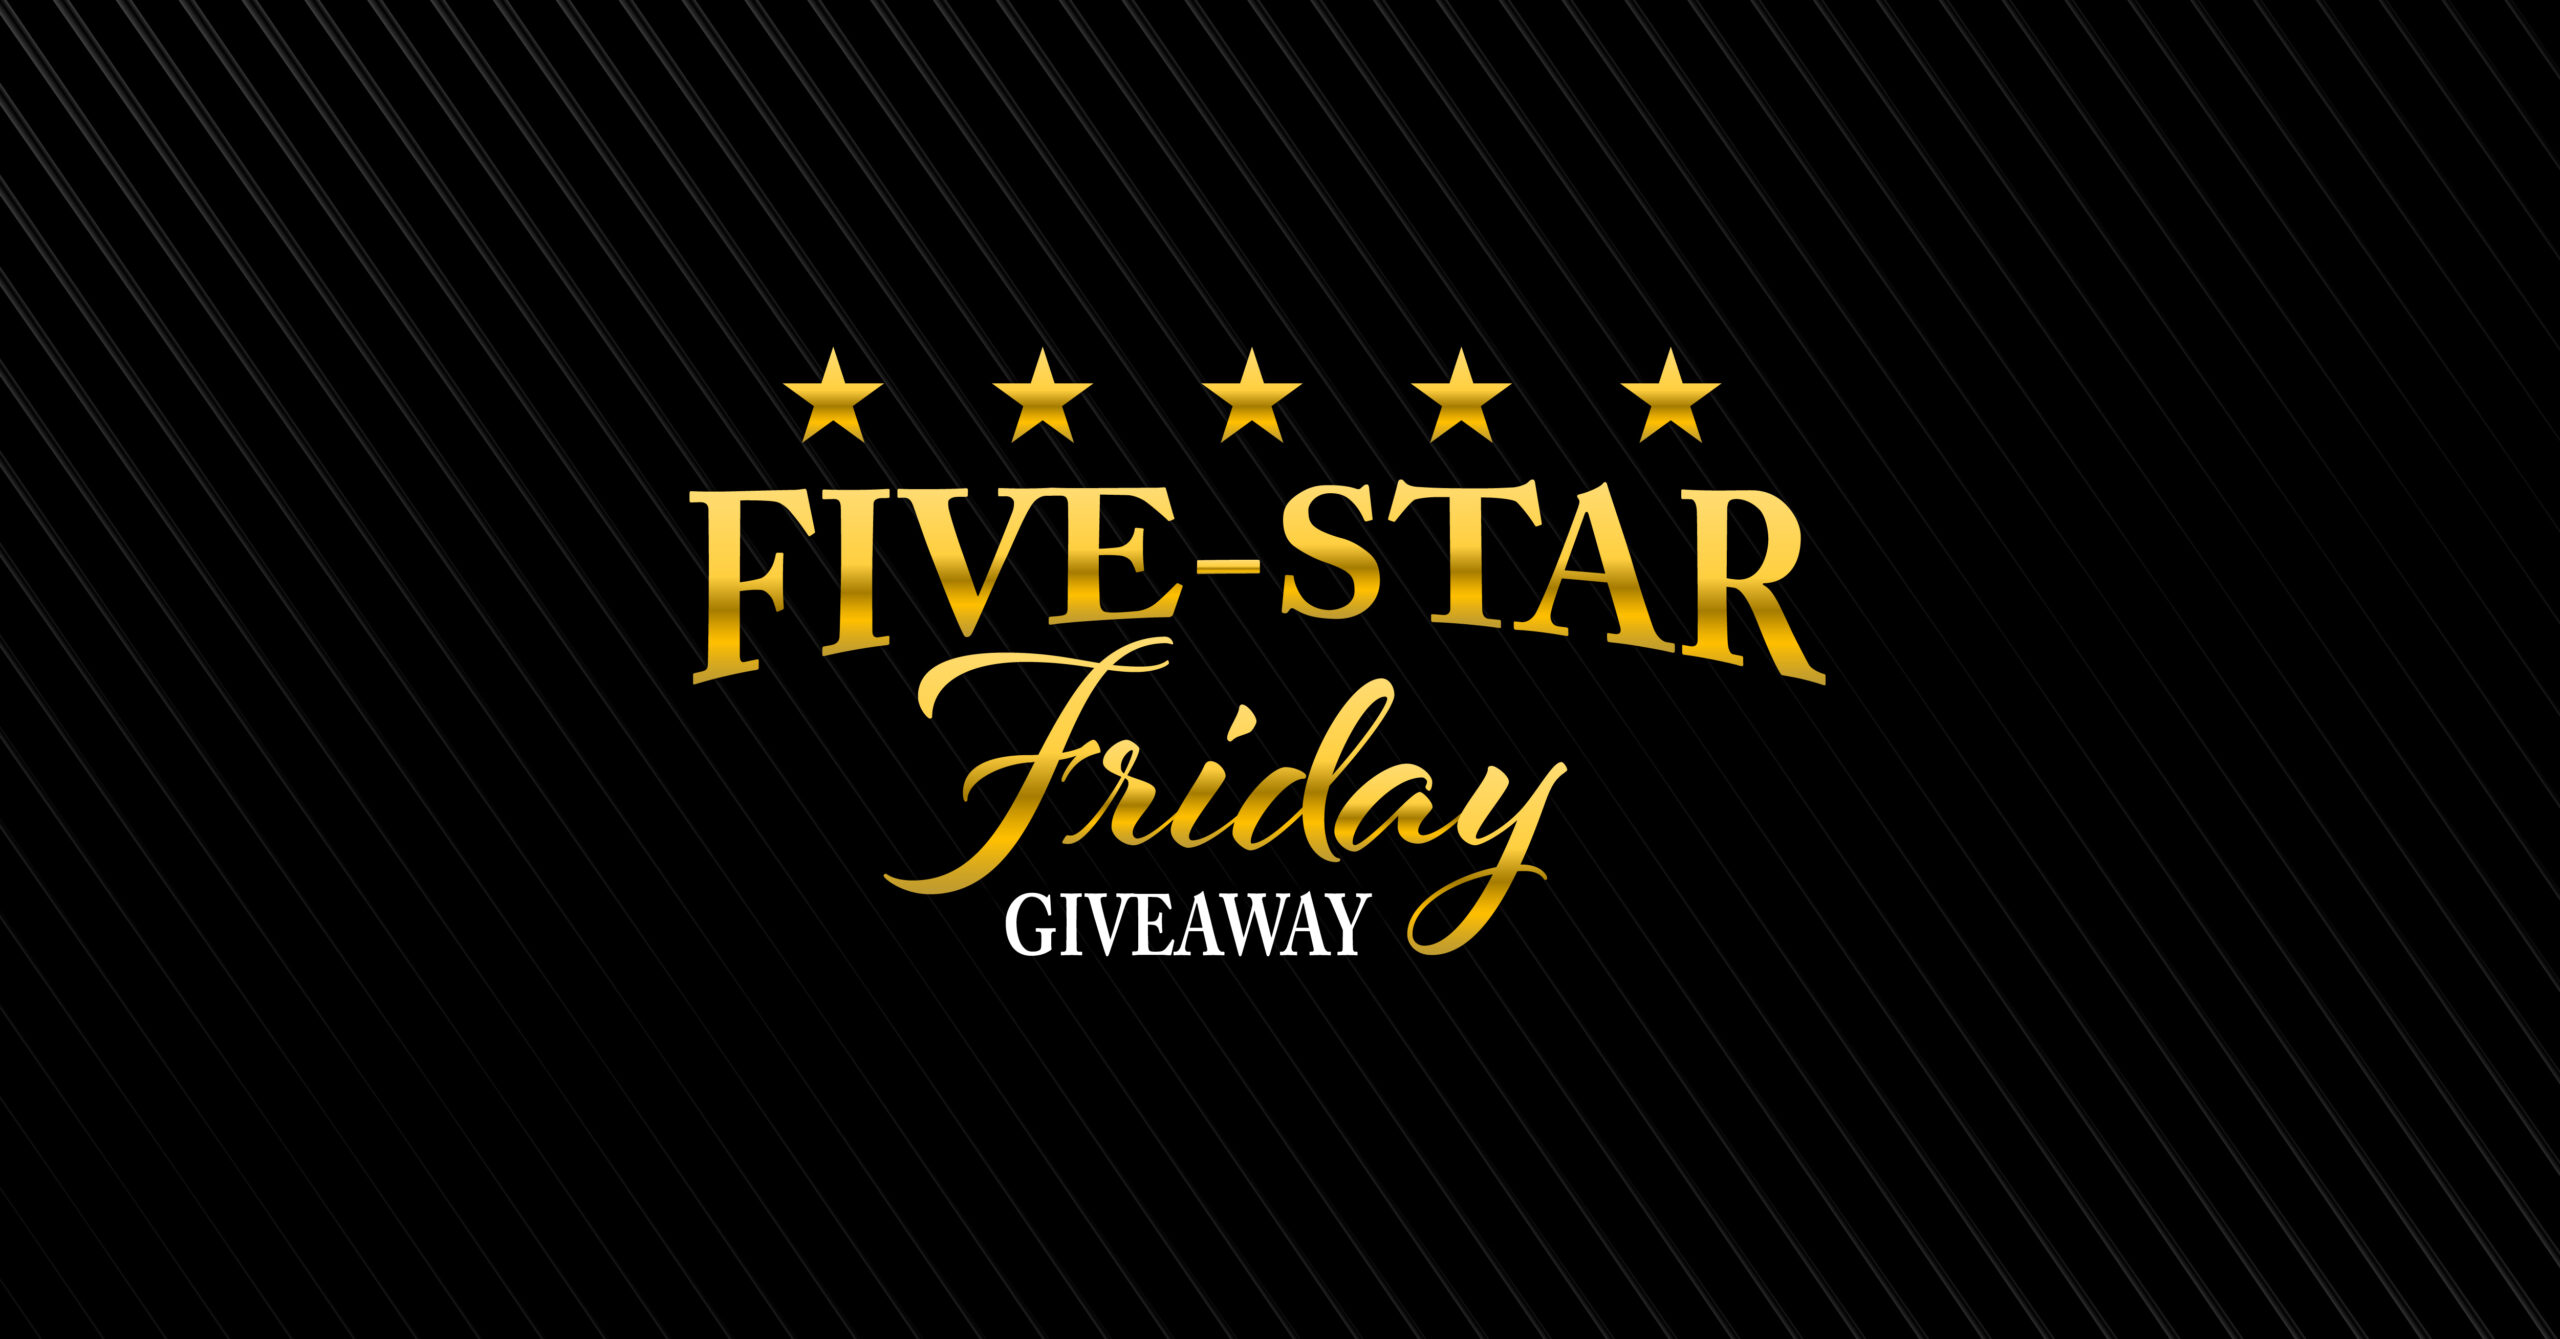 FIVE-STAR FRIDAY GIVEAWAY